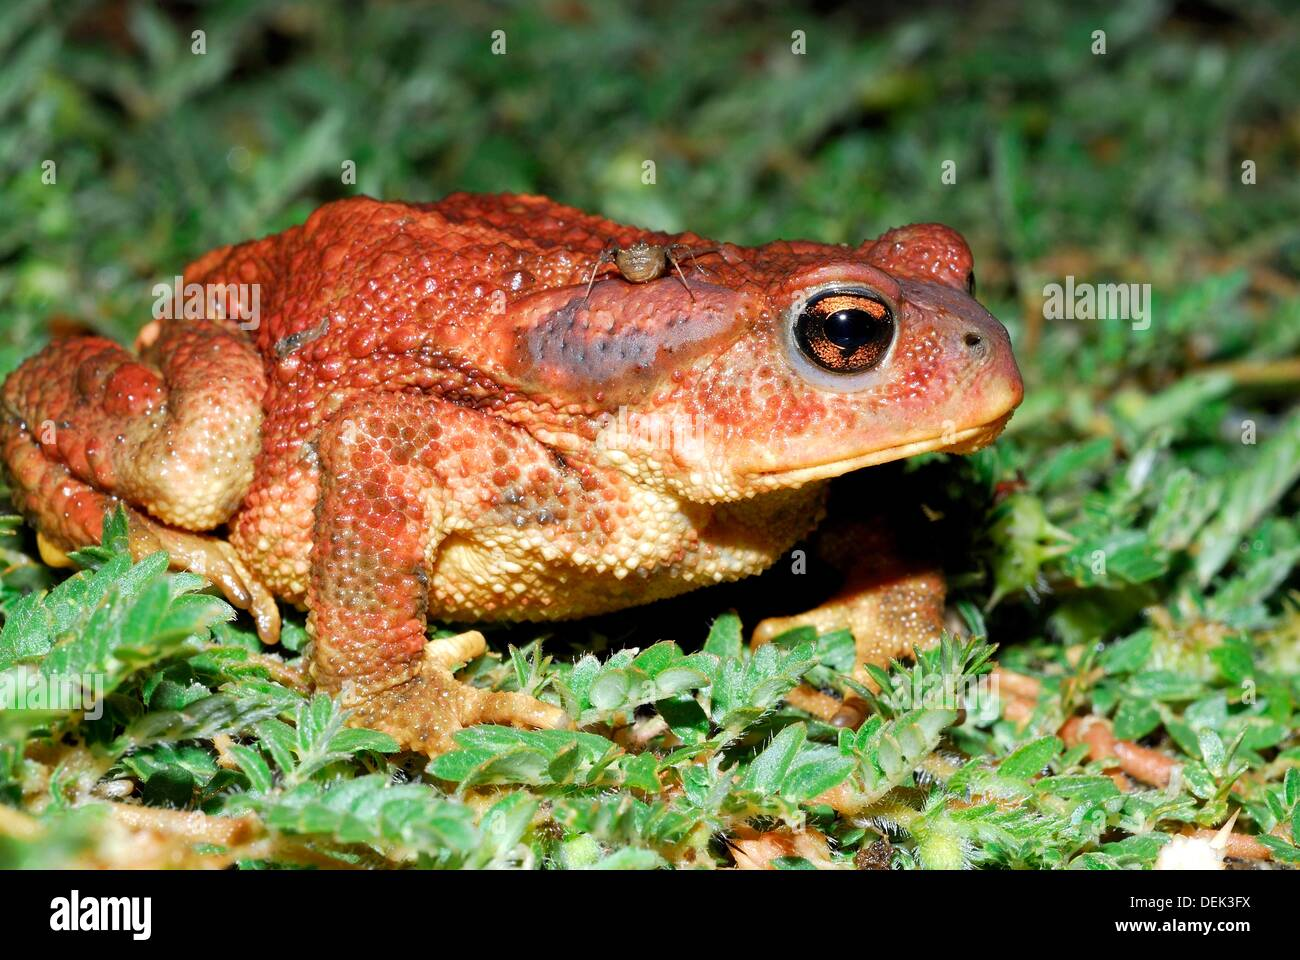 Common toad Bufo bufo in Patones, Madrid, Spain Stock Photo